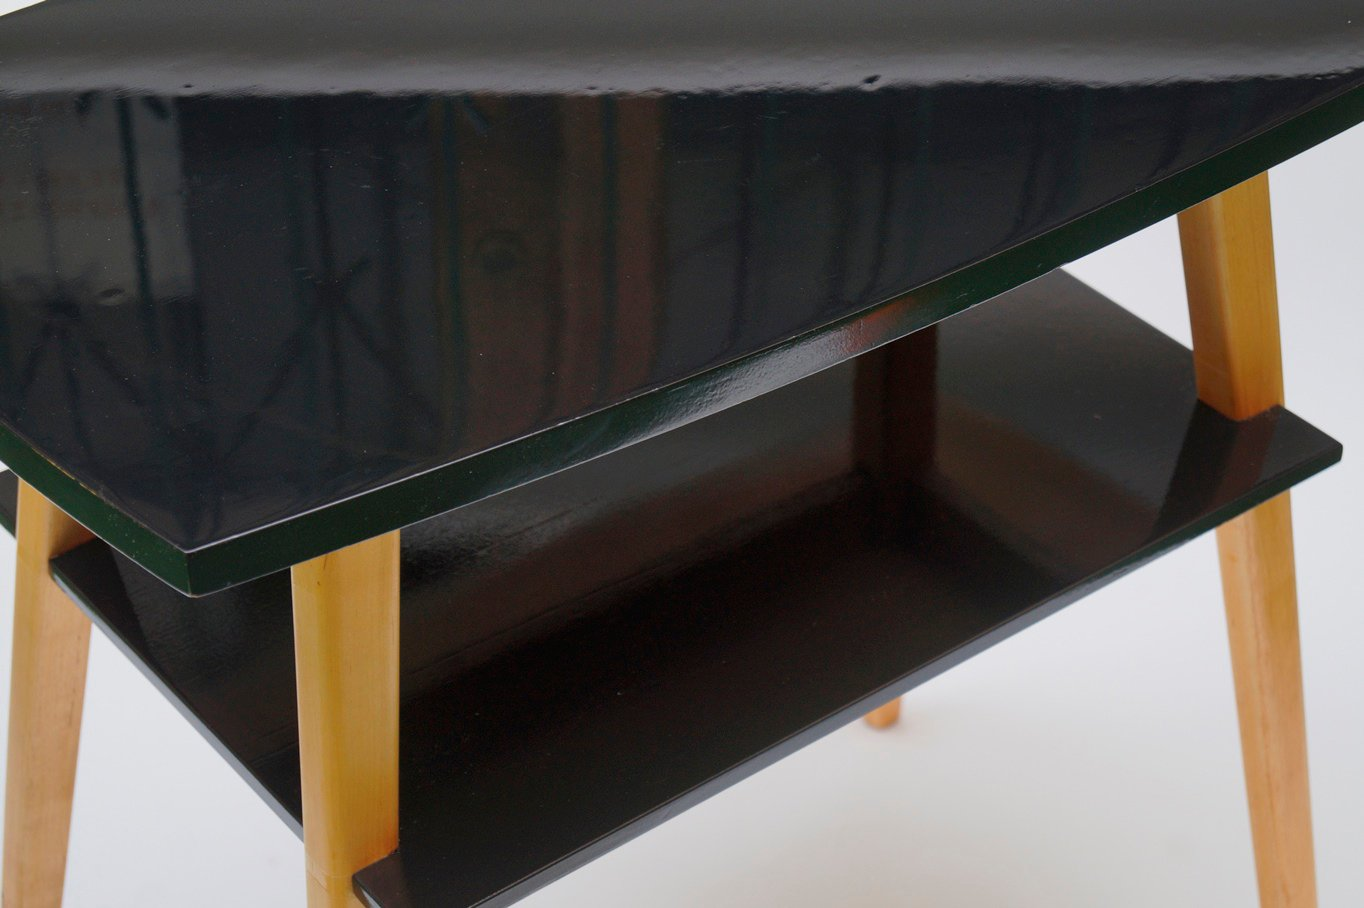 Vintage tv table by le niewski lejkowski for cracow for Furniture factory